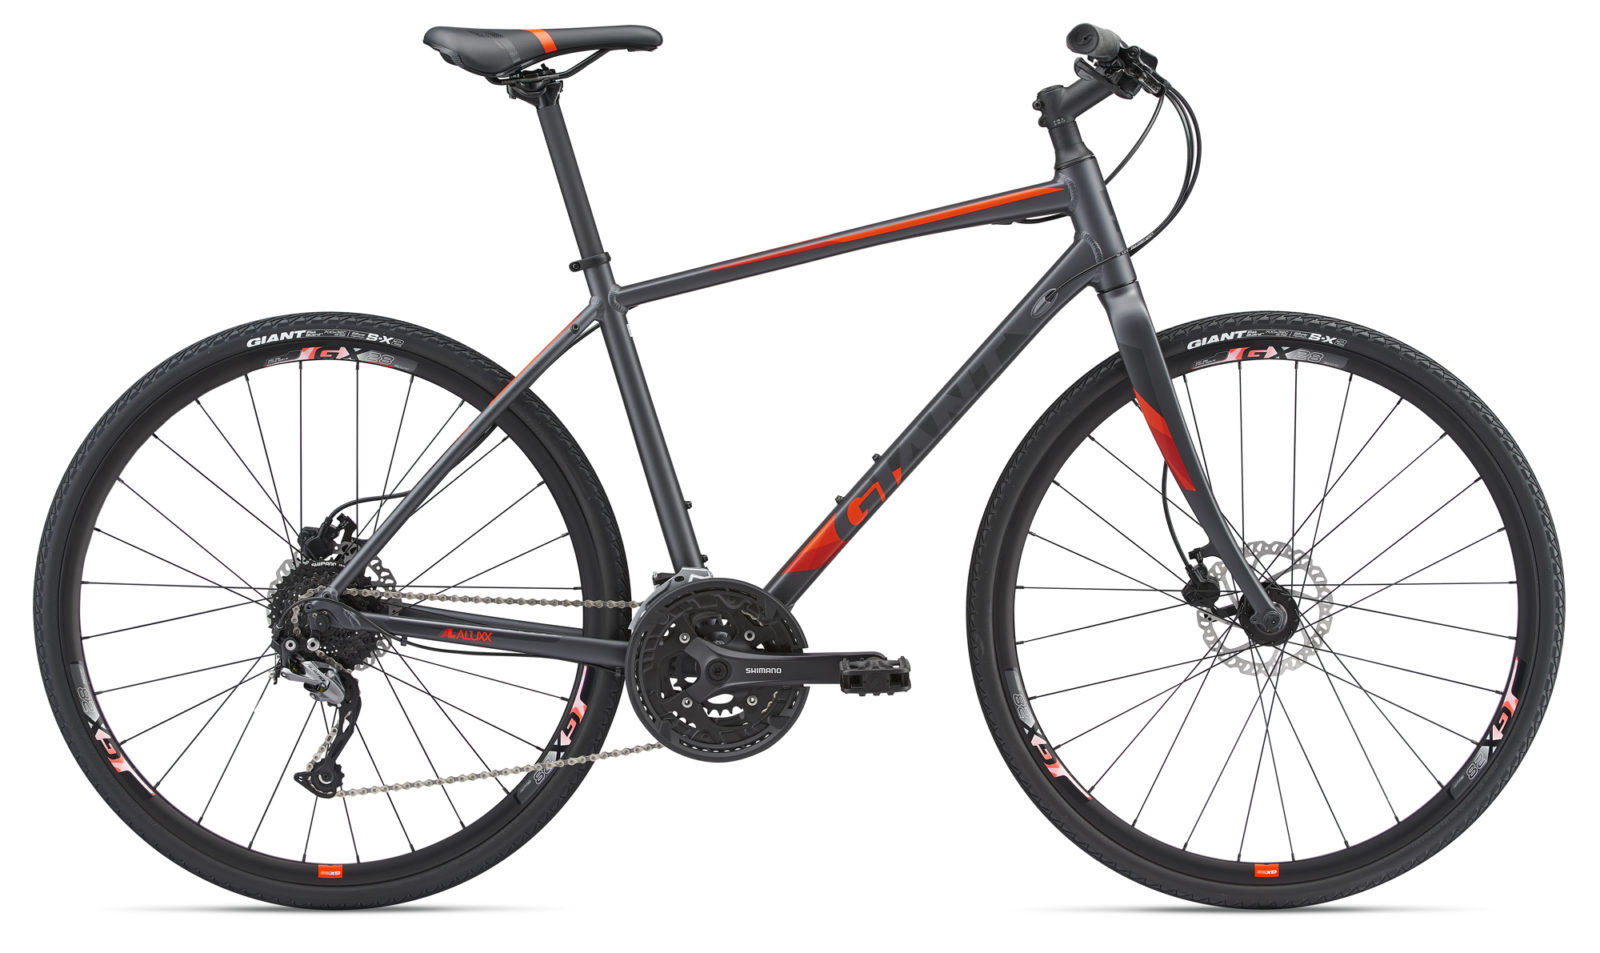 Giant X-Road Excape 1 Disc 2019